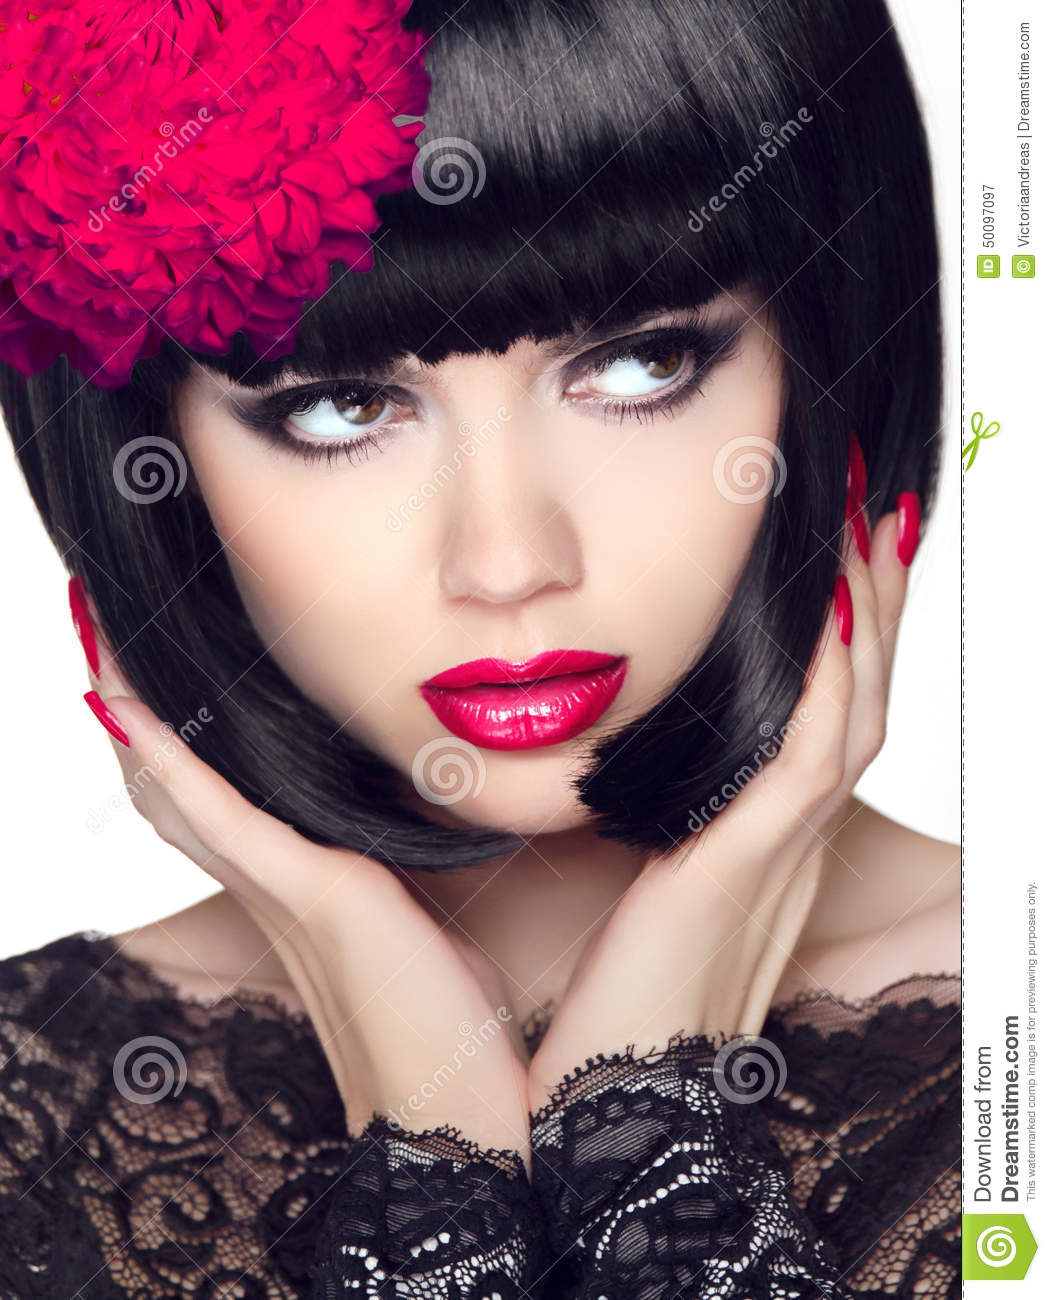 Beauty Fashion Model Girl With Short Hair Stock Photo 55059000